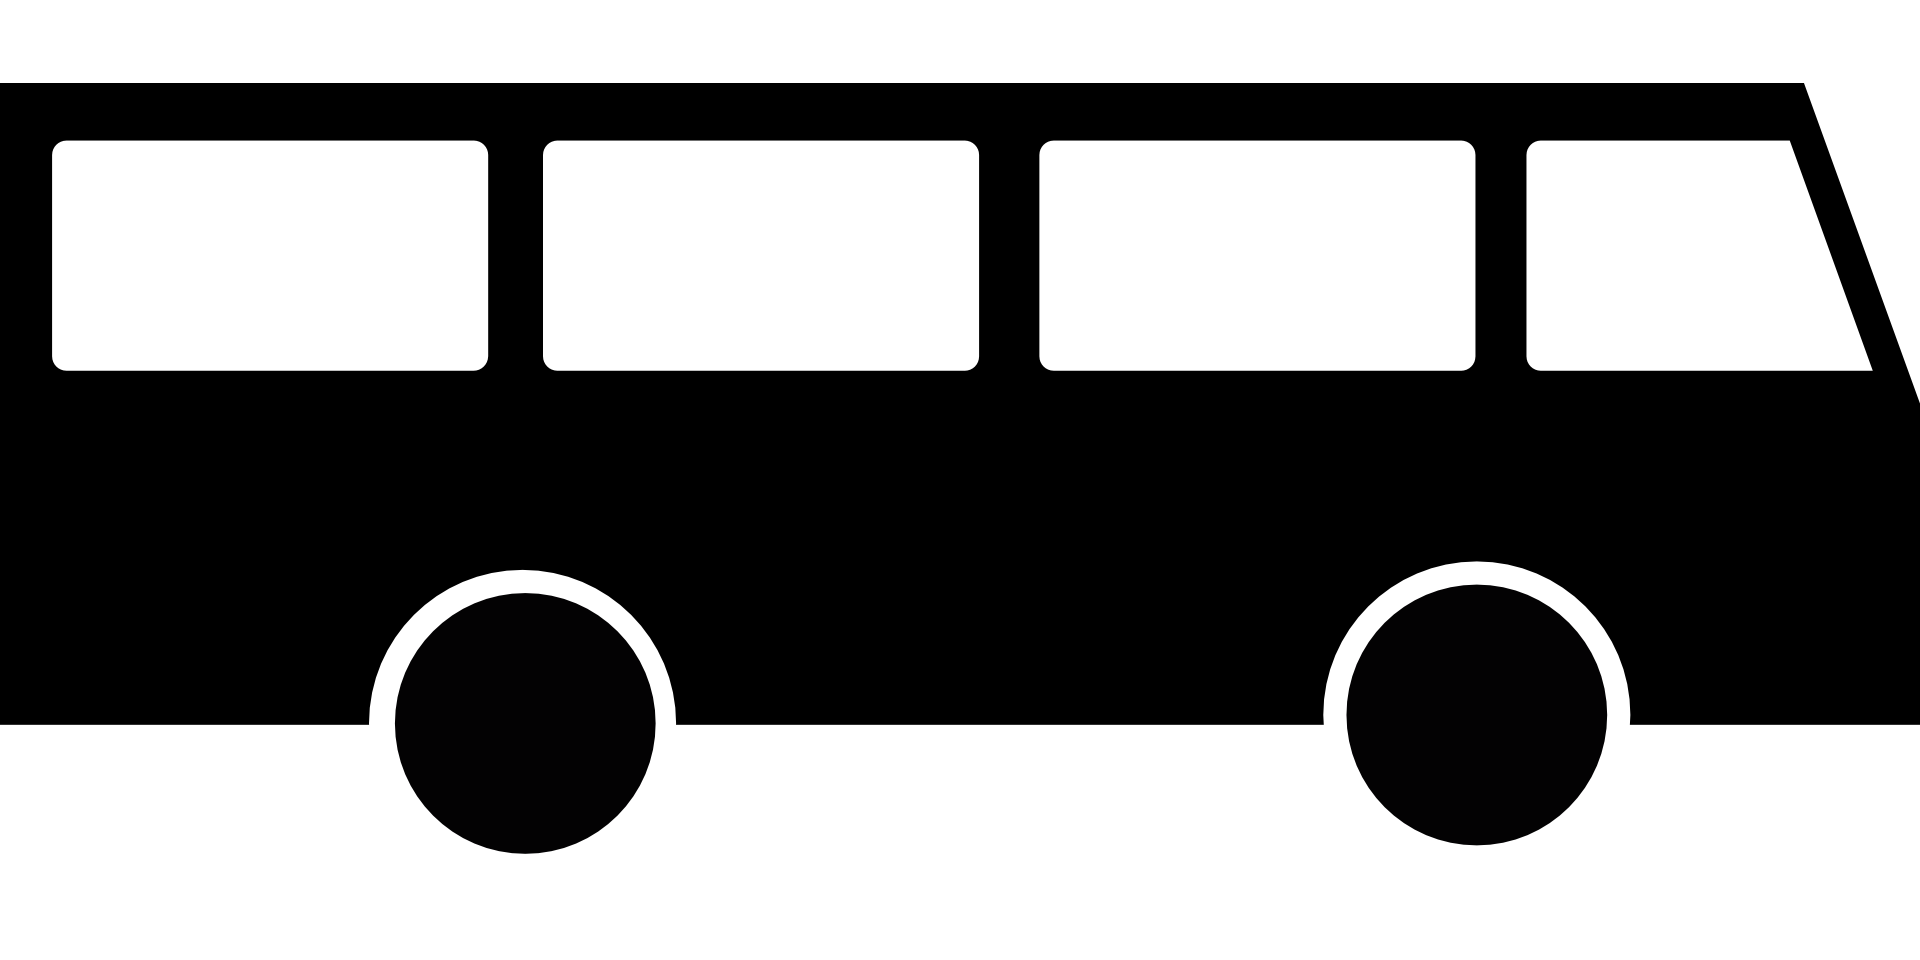 Black Bus Abstract Icon Free Image